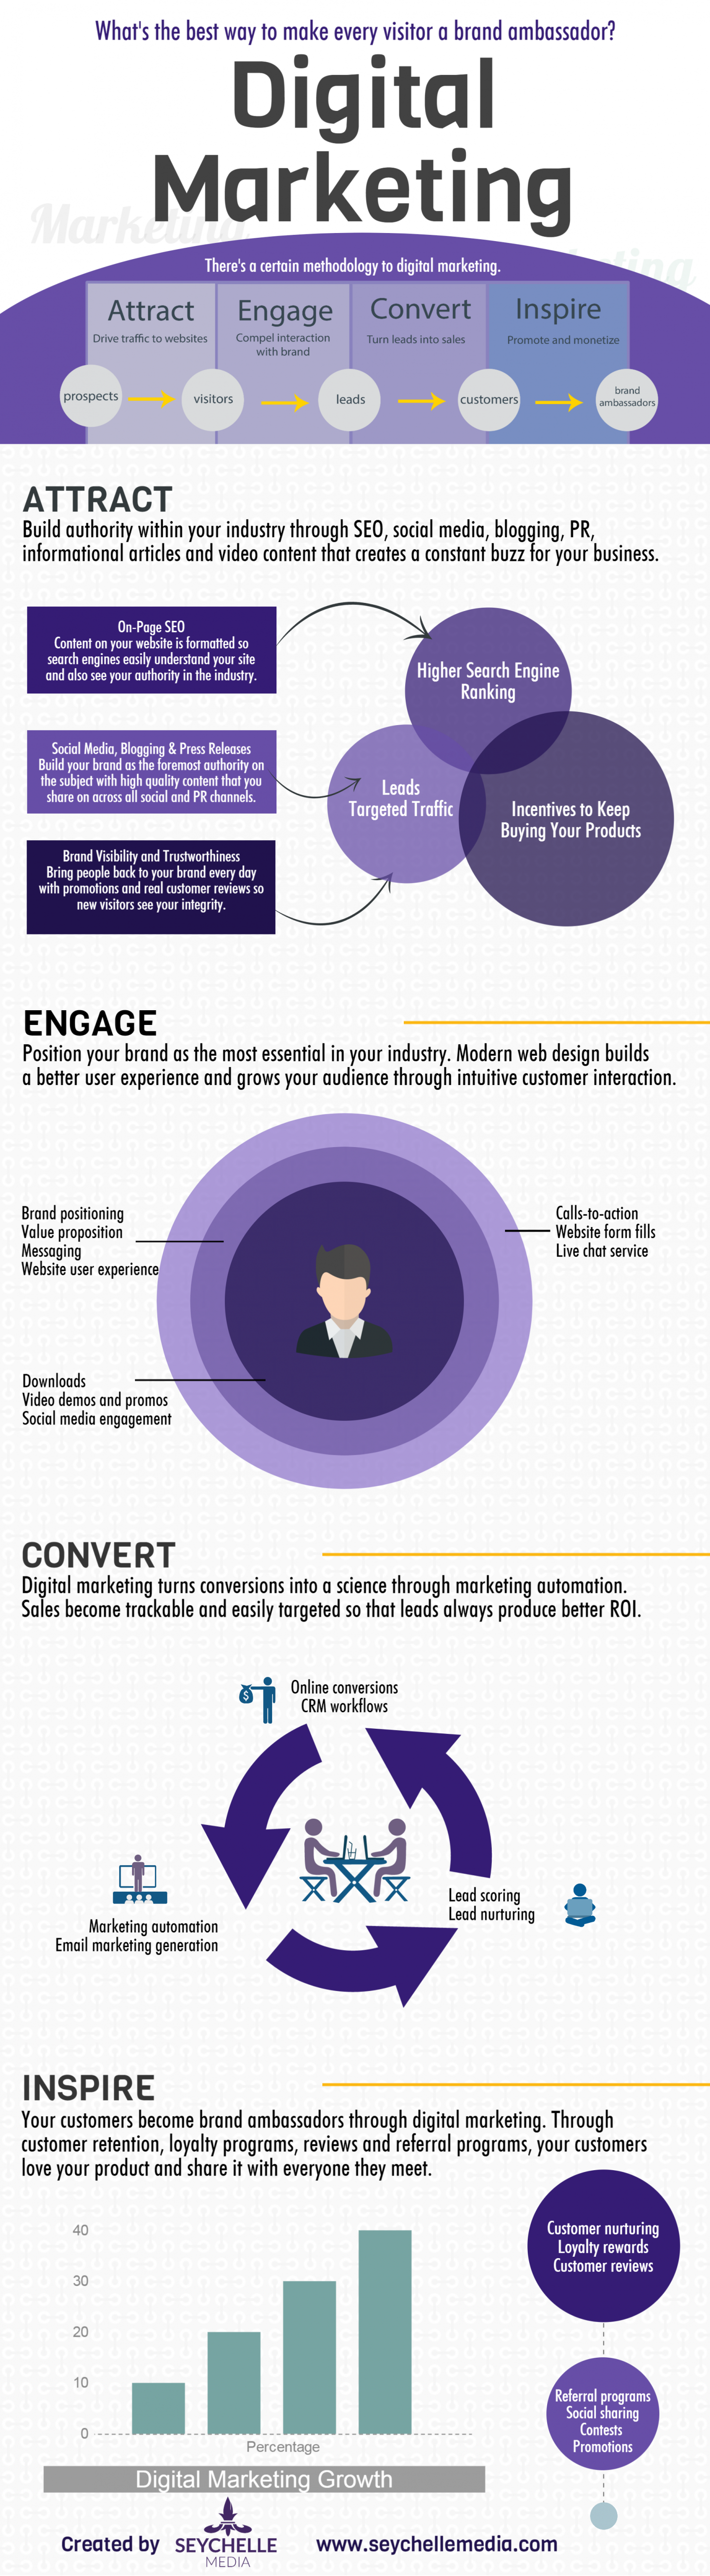 How to Turn Visitors into Brand Ambassadors: Digital Marketing Infographic